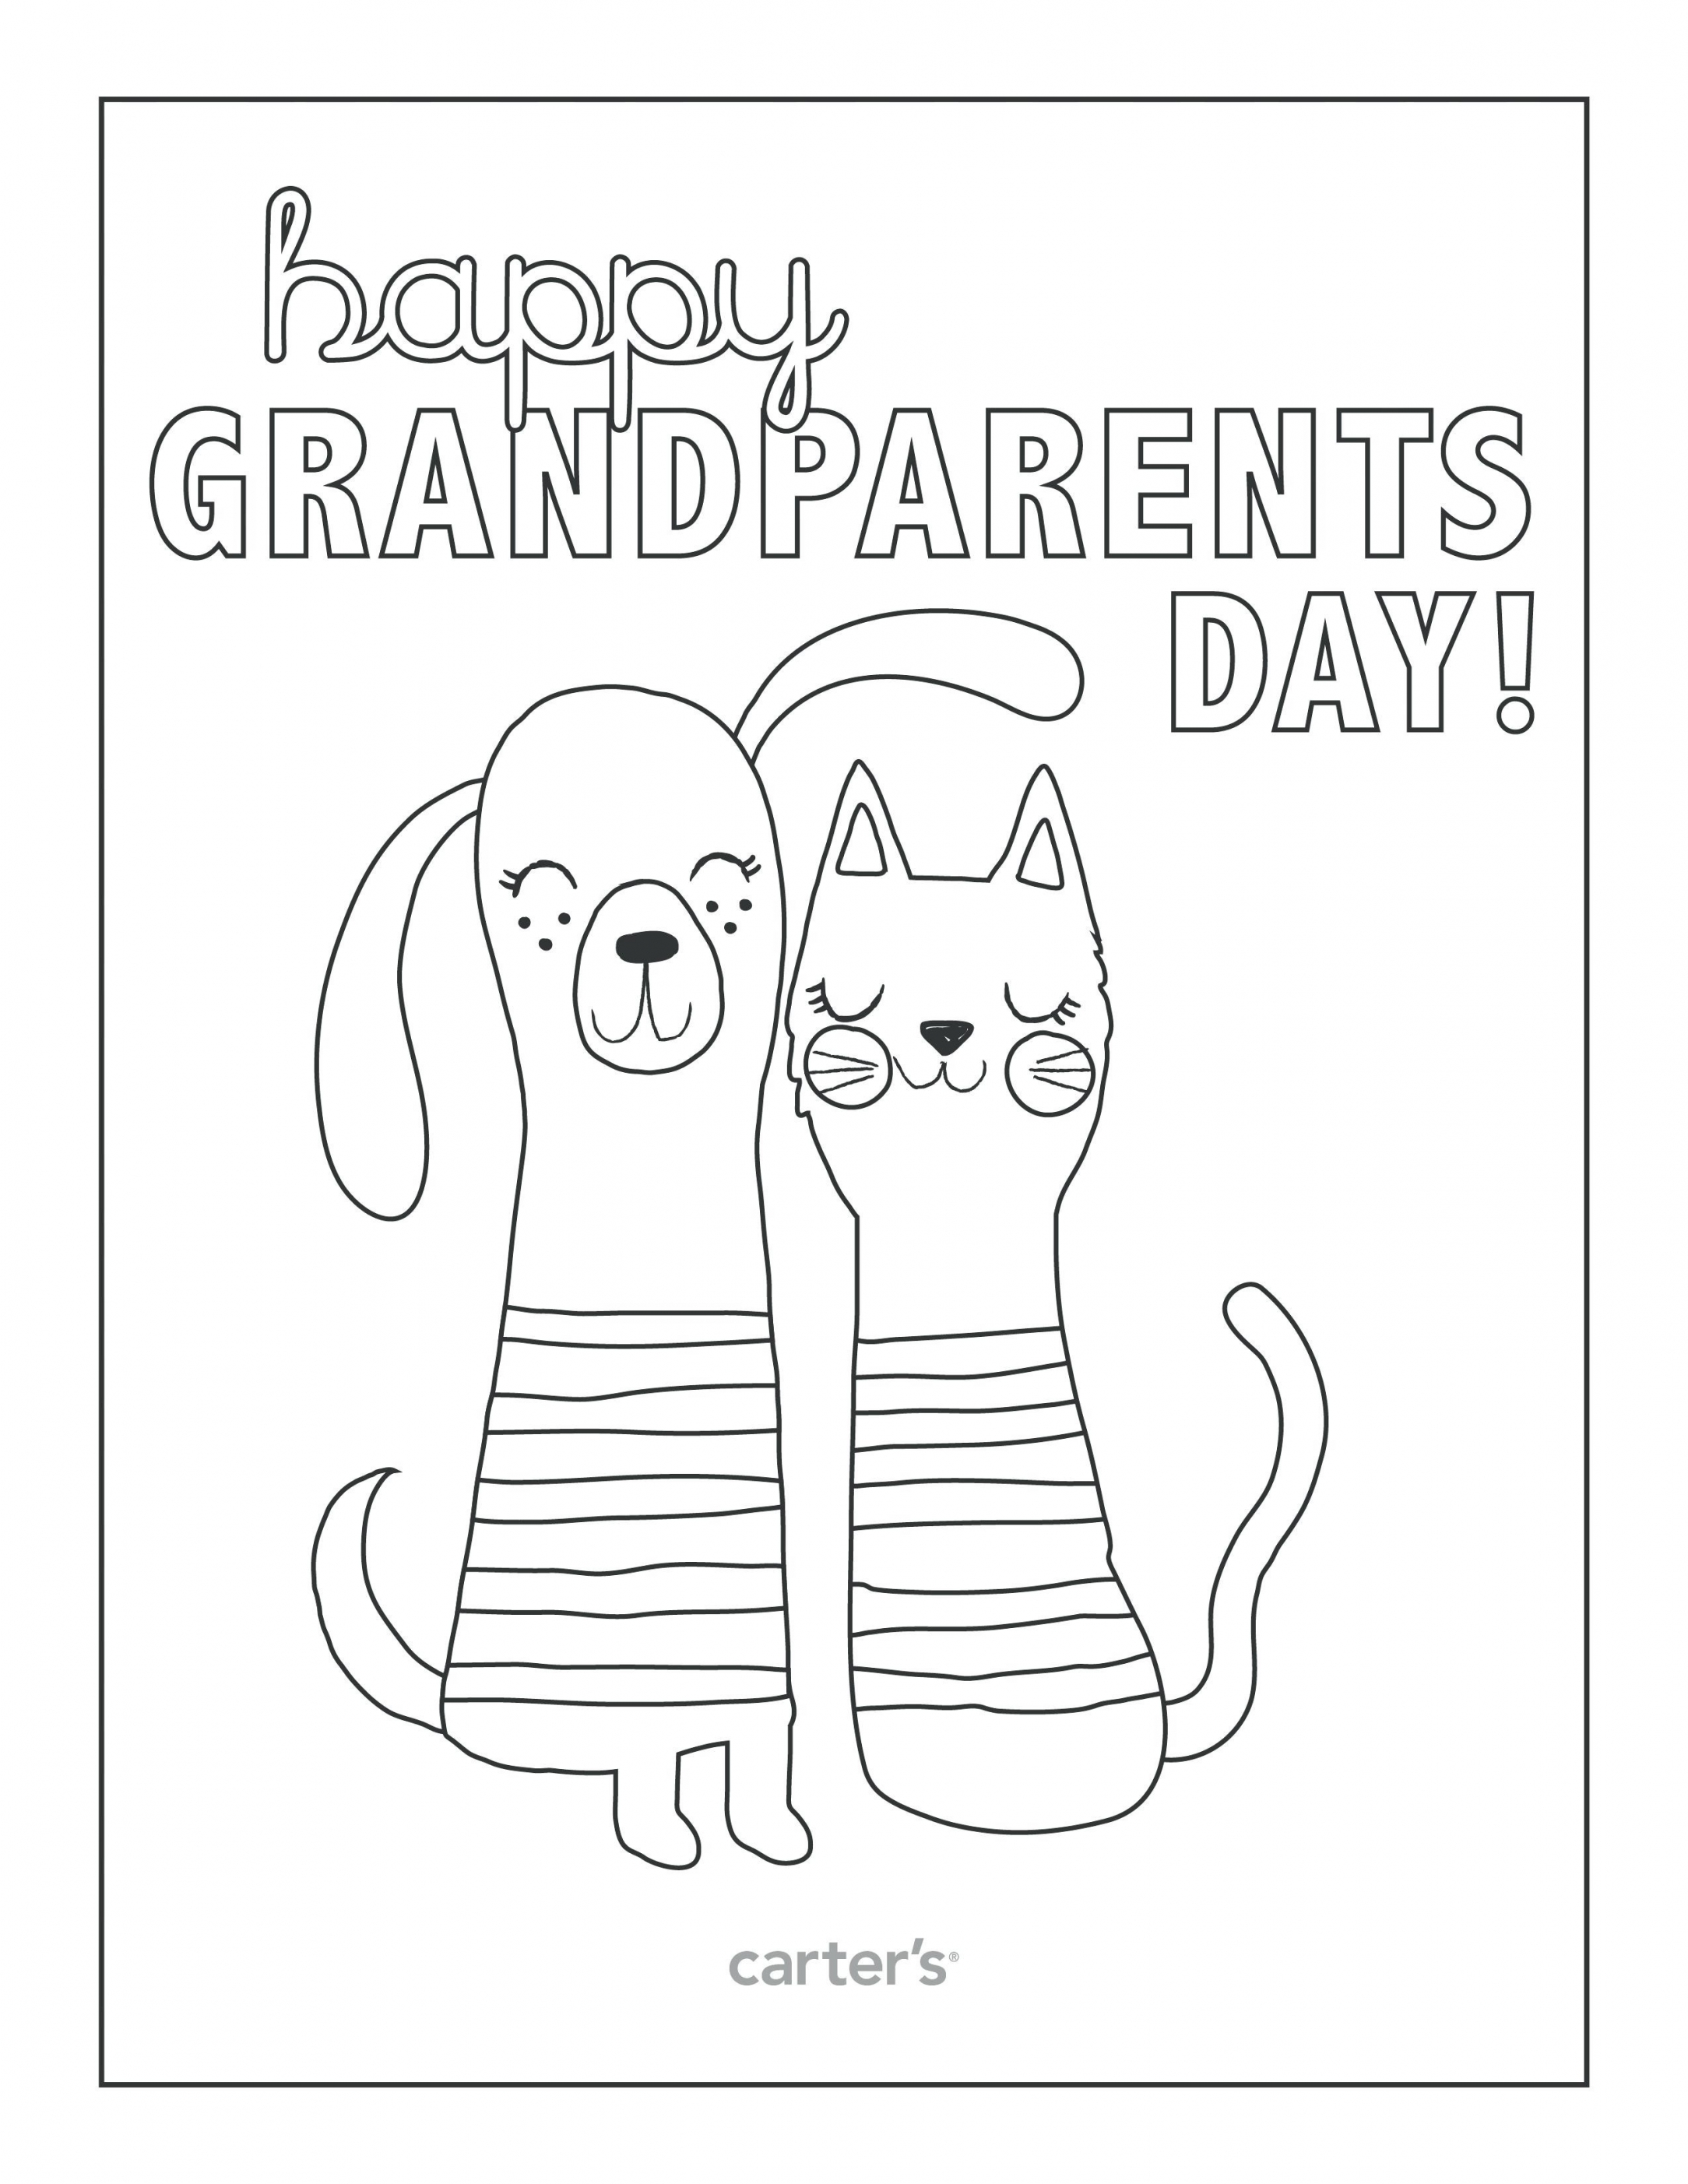 childrens awards coloring pages - photo#14